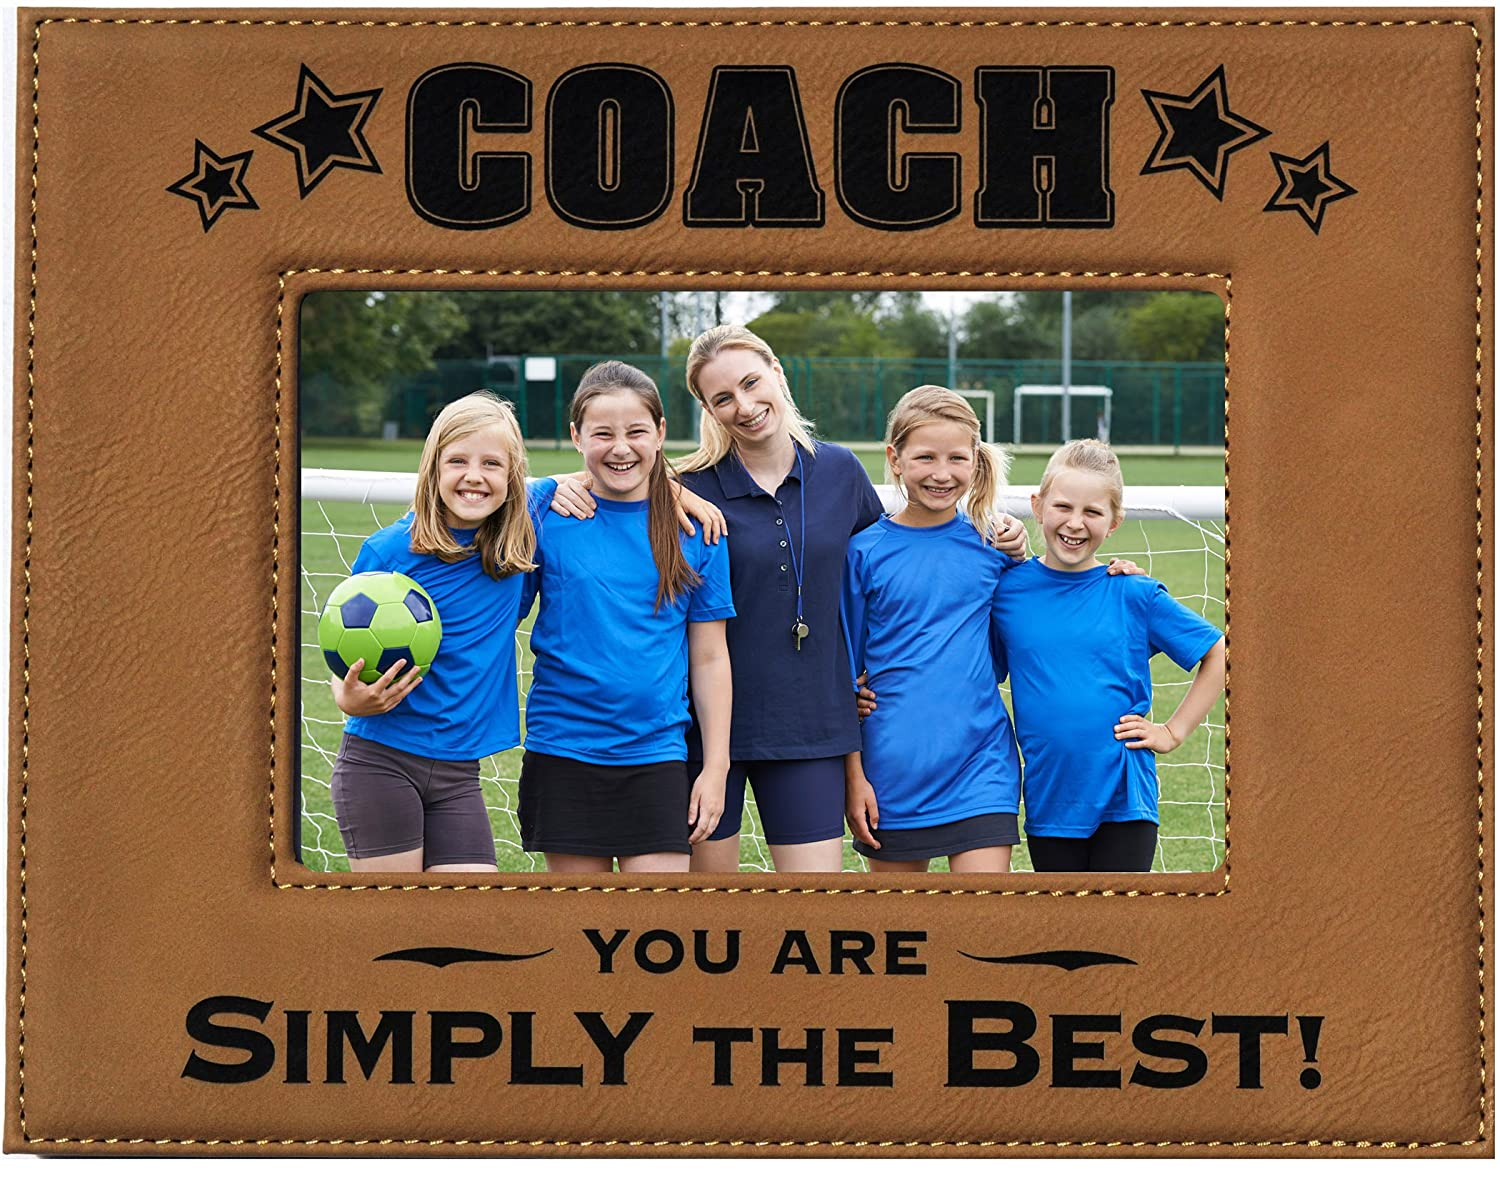 Amazon gift coach picture frame engraved leatherette amazon gift coach picture frame engraved leatherette picture frame coach you are simply the best holds 4 x 6 photo baseball football jeuxipadfo Gallery